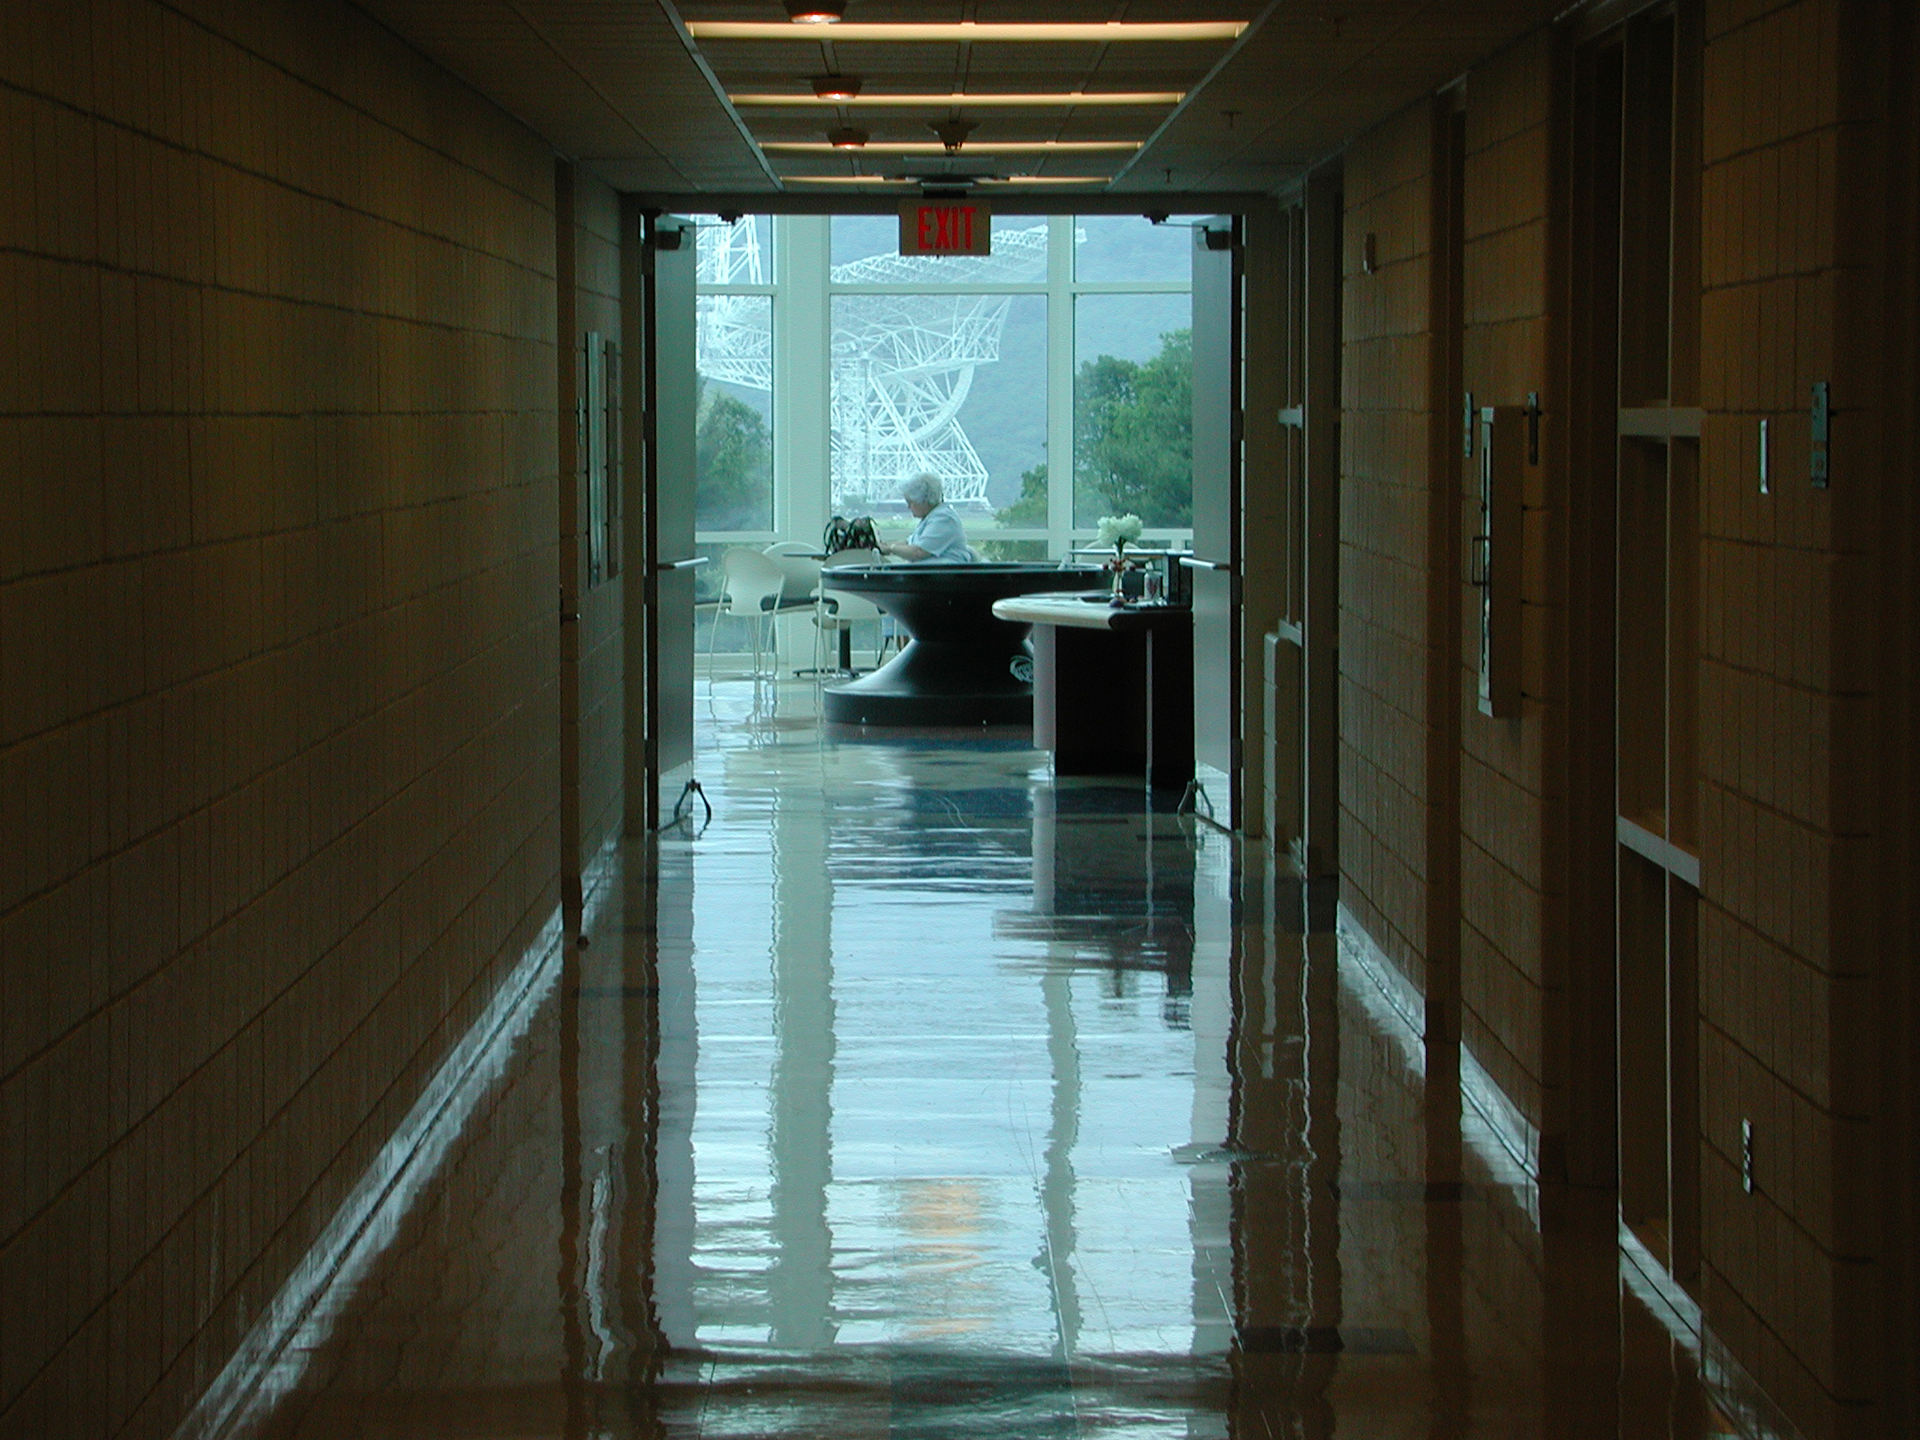 The GBT viewed from a hallway inside the Green Bank Science Center